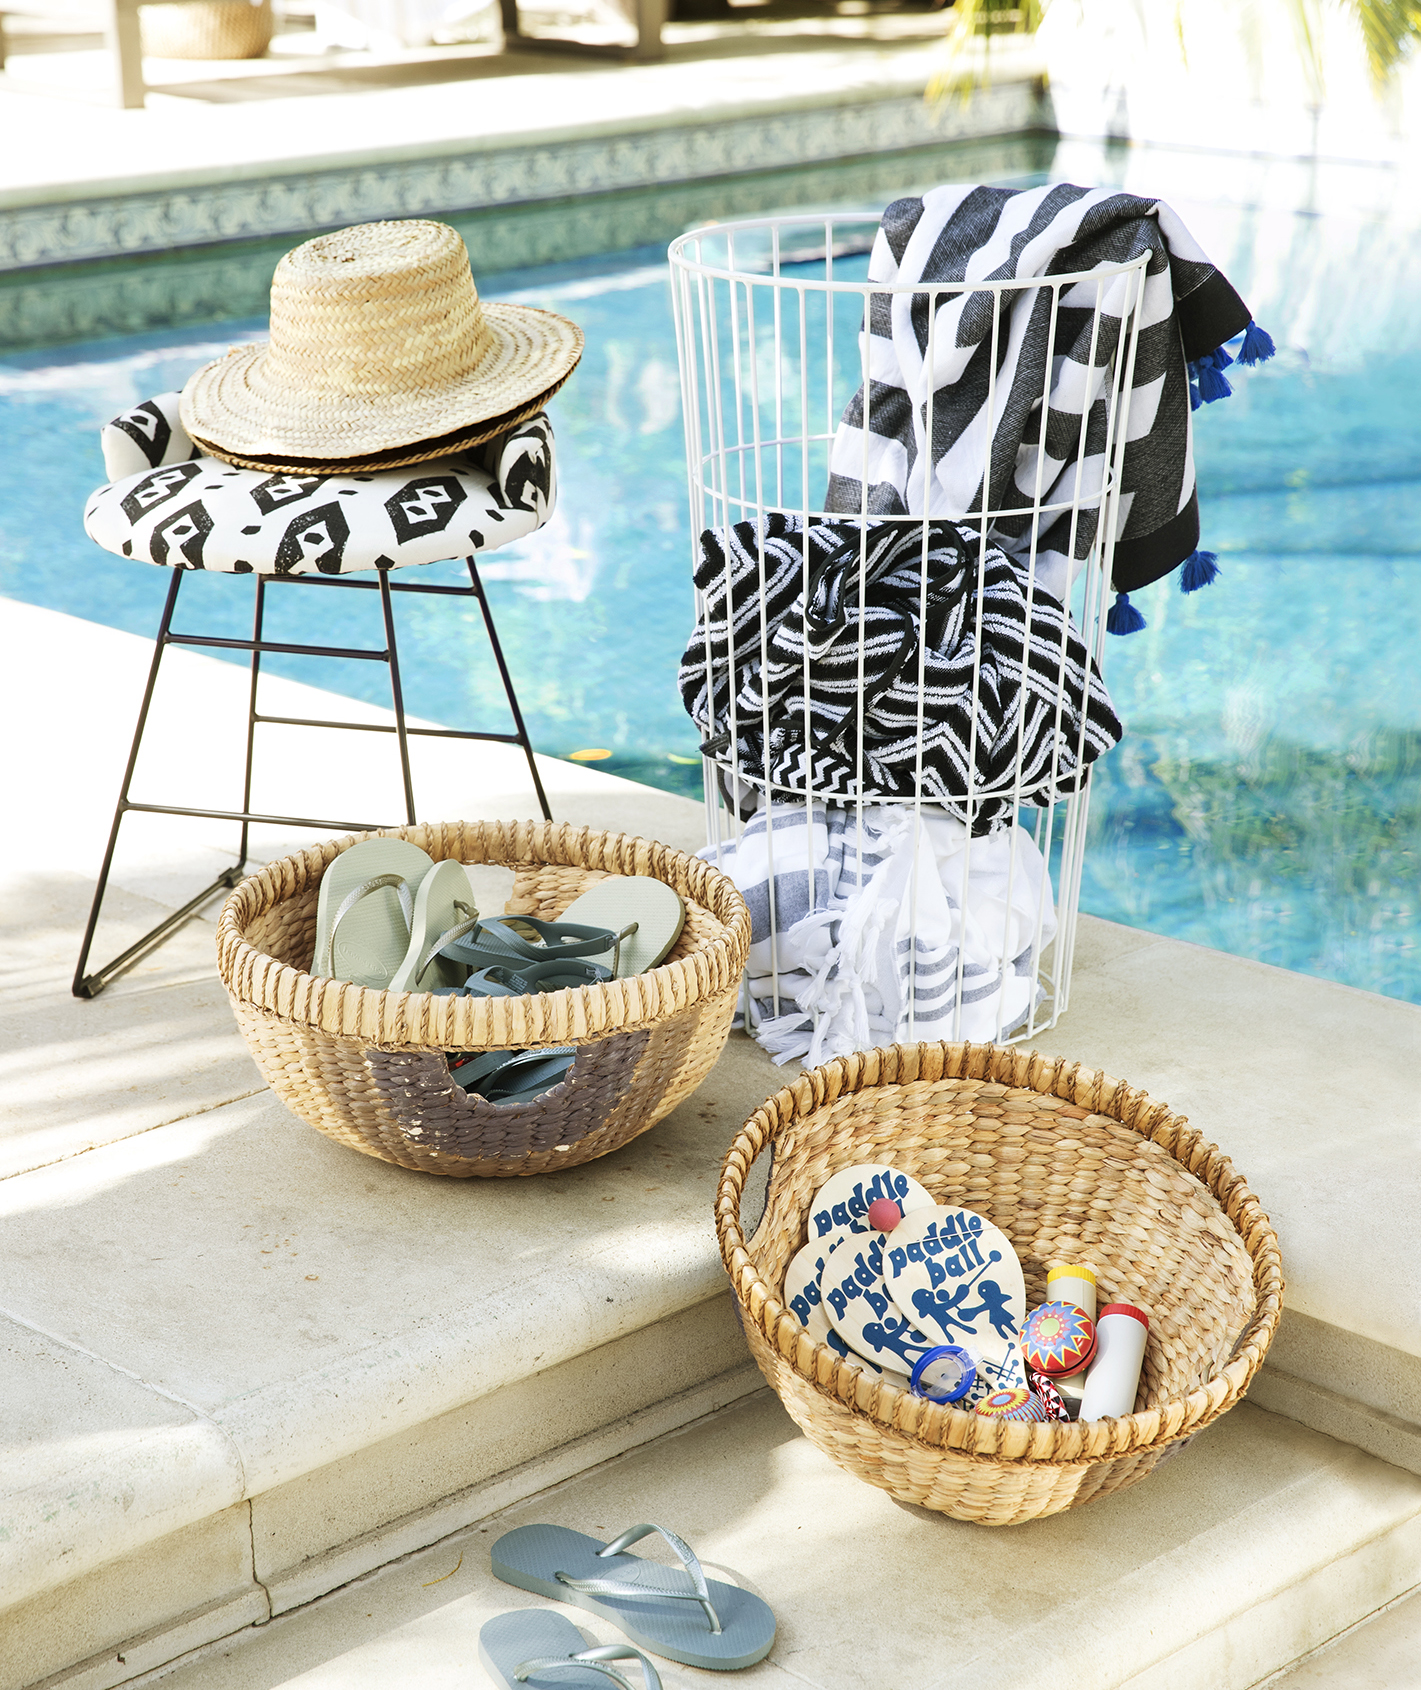 Poolside accessories